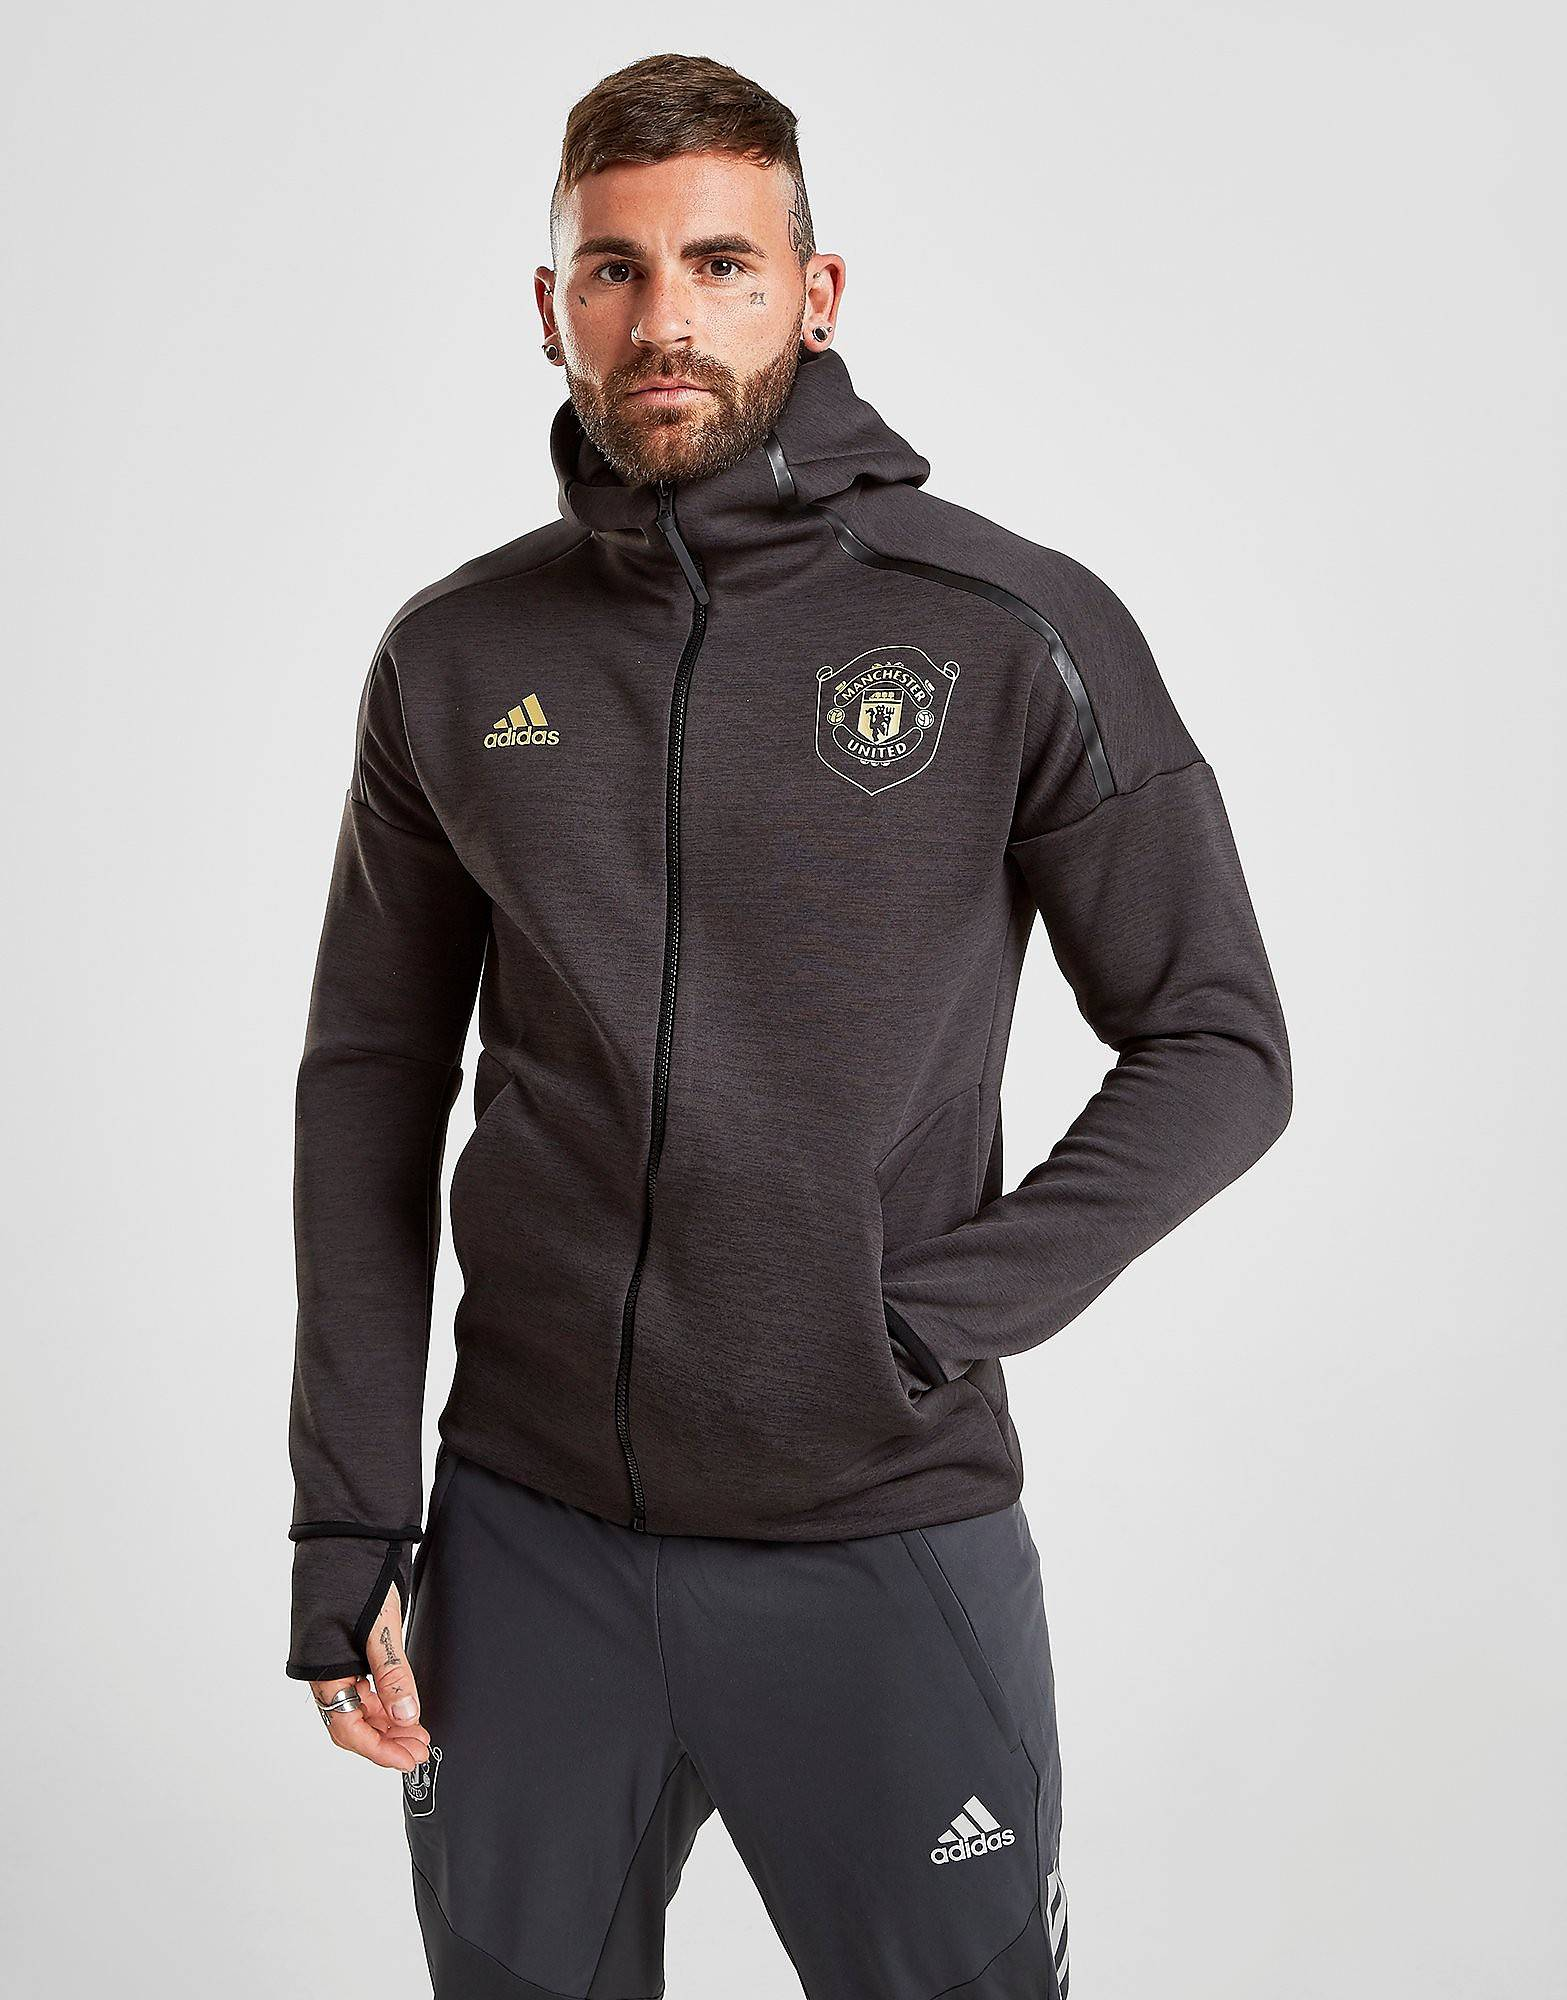 Image of Adidas Manchester United Z.N.E Hoodie 3.0 - Mens, Musta